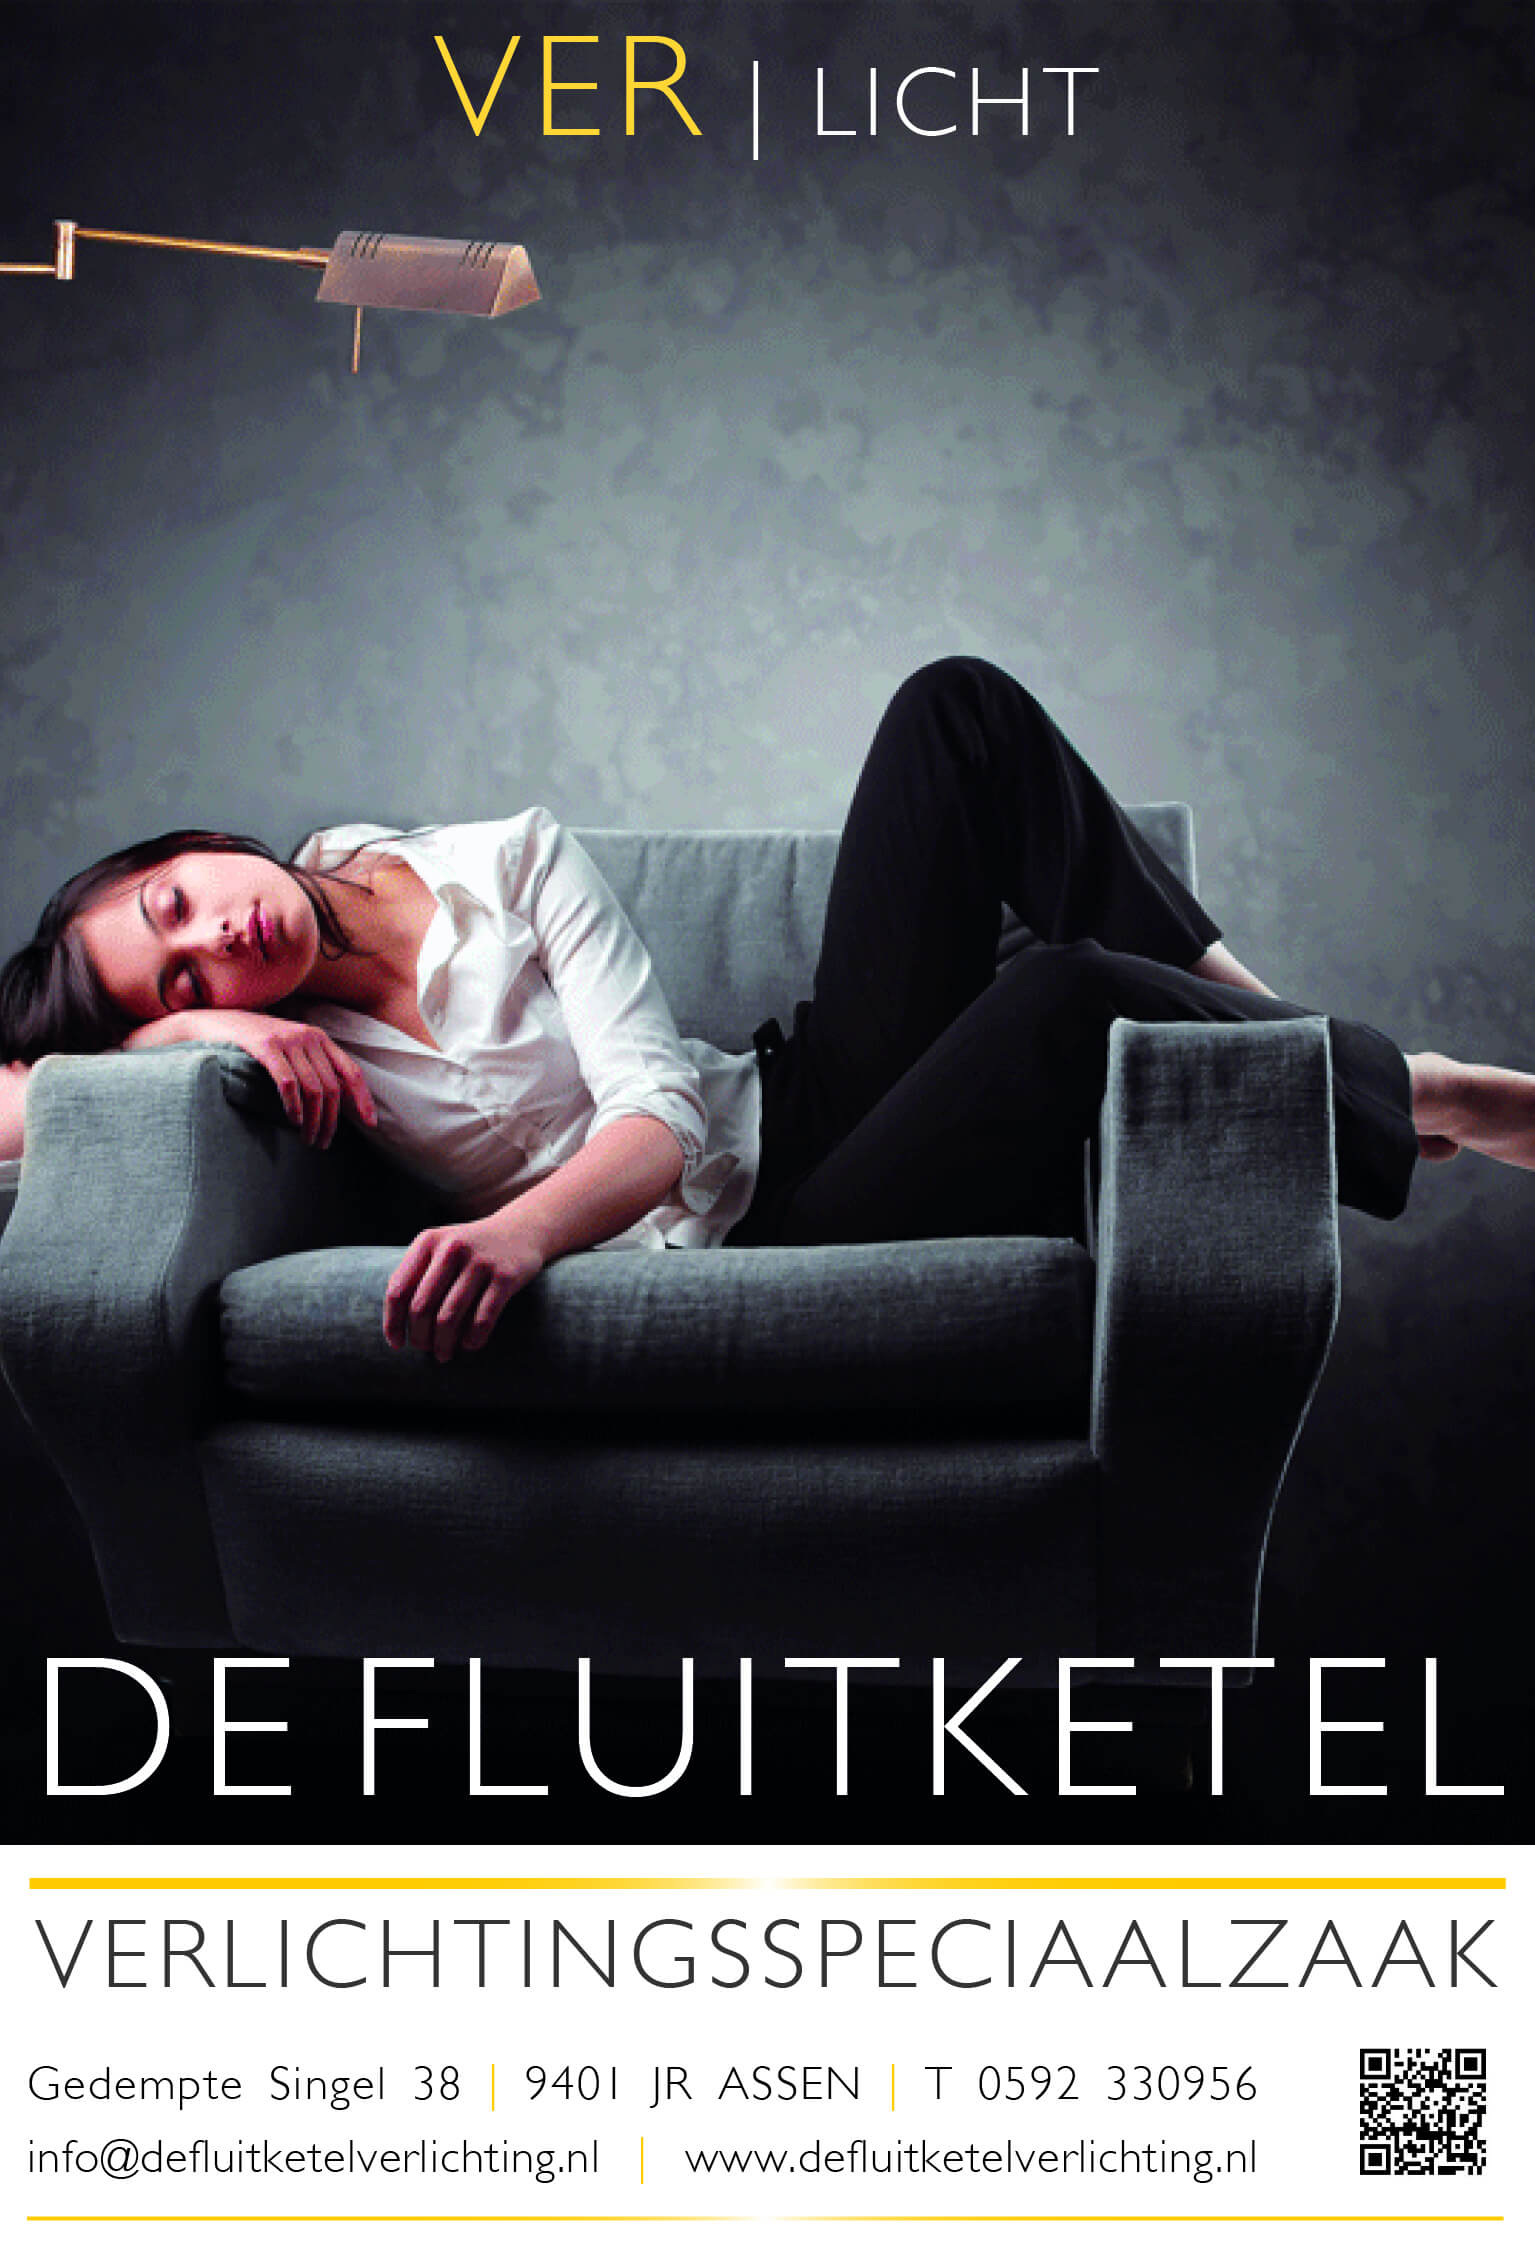 fluitketel-test-advert-11july2016-def-1